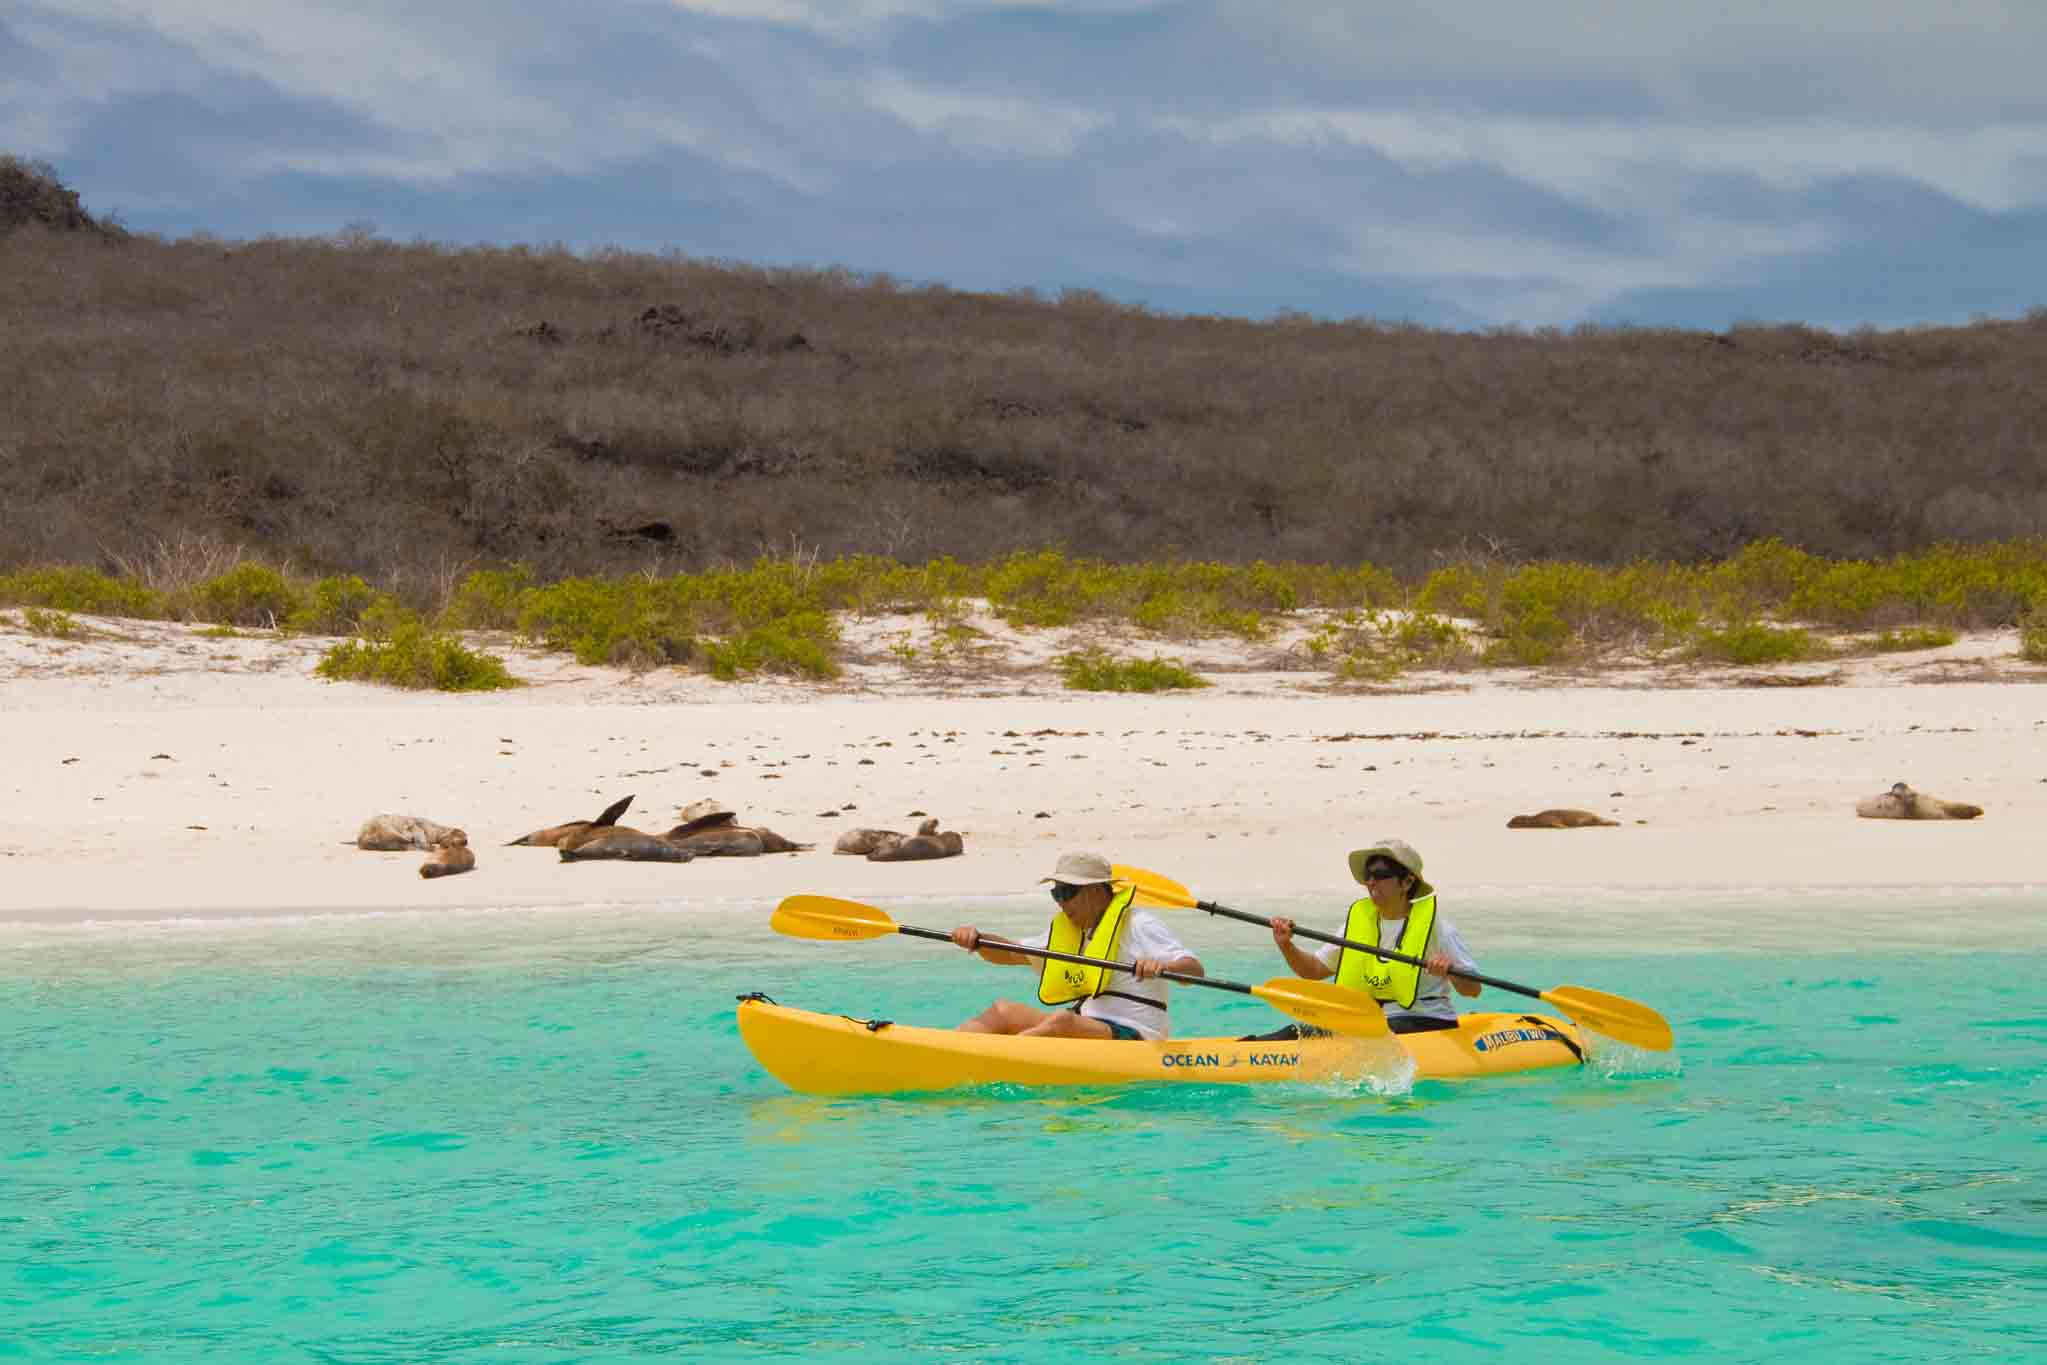 Family Travel to the Galapagos islands – FAQs